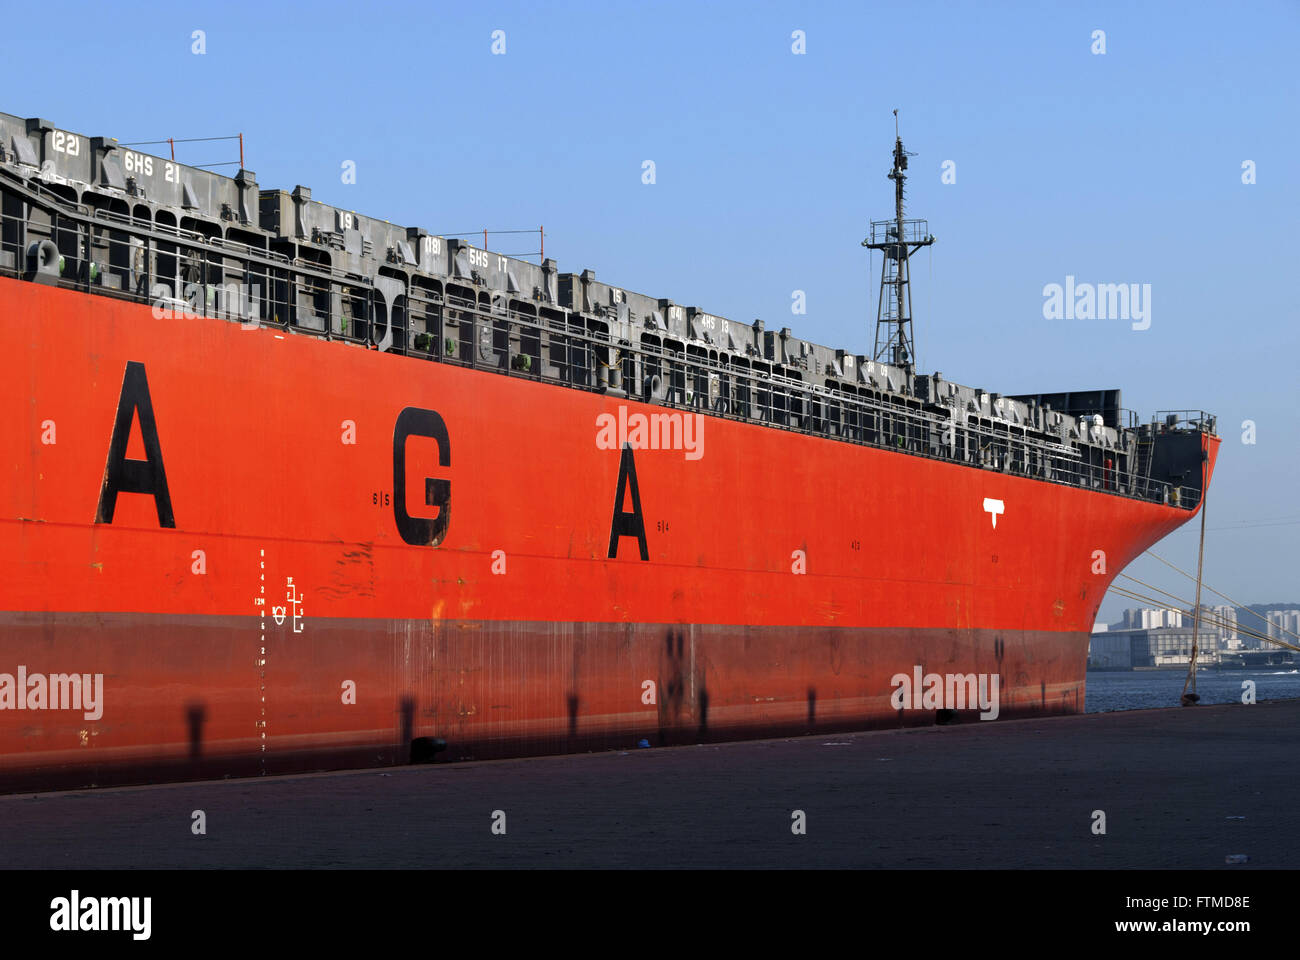 Ship Owner Saga Forest Carriers docked at the side of the port of Santos - Stock Image